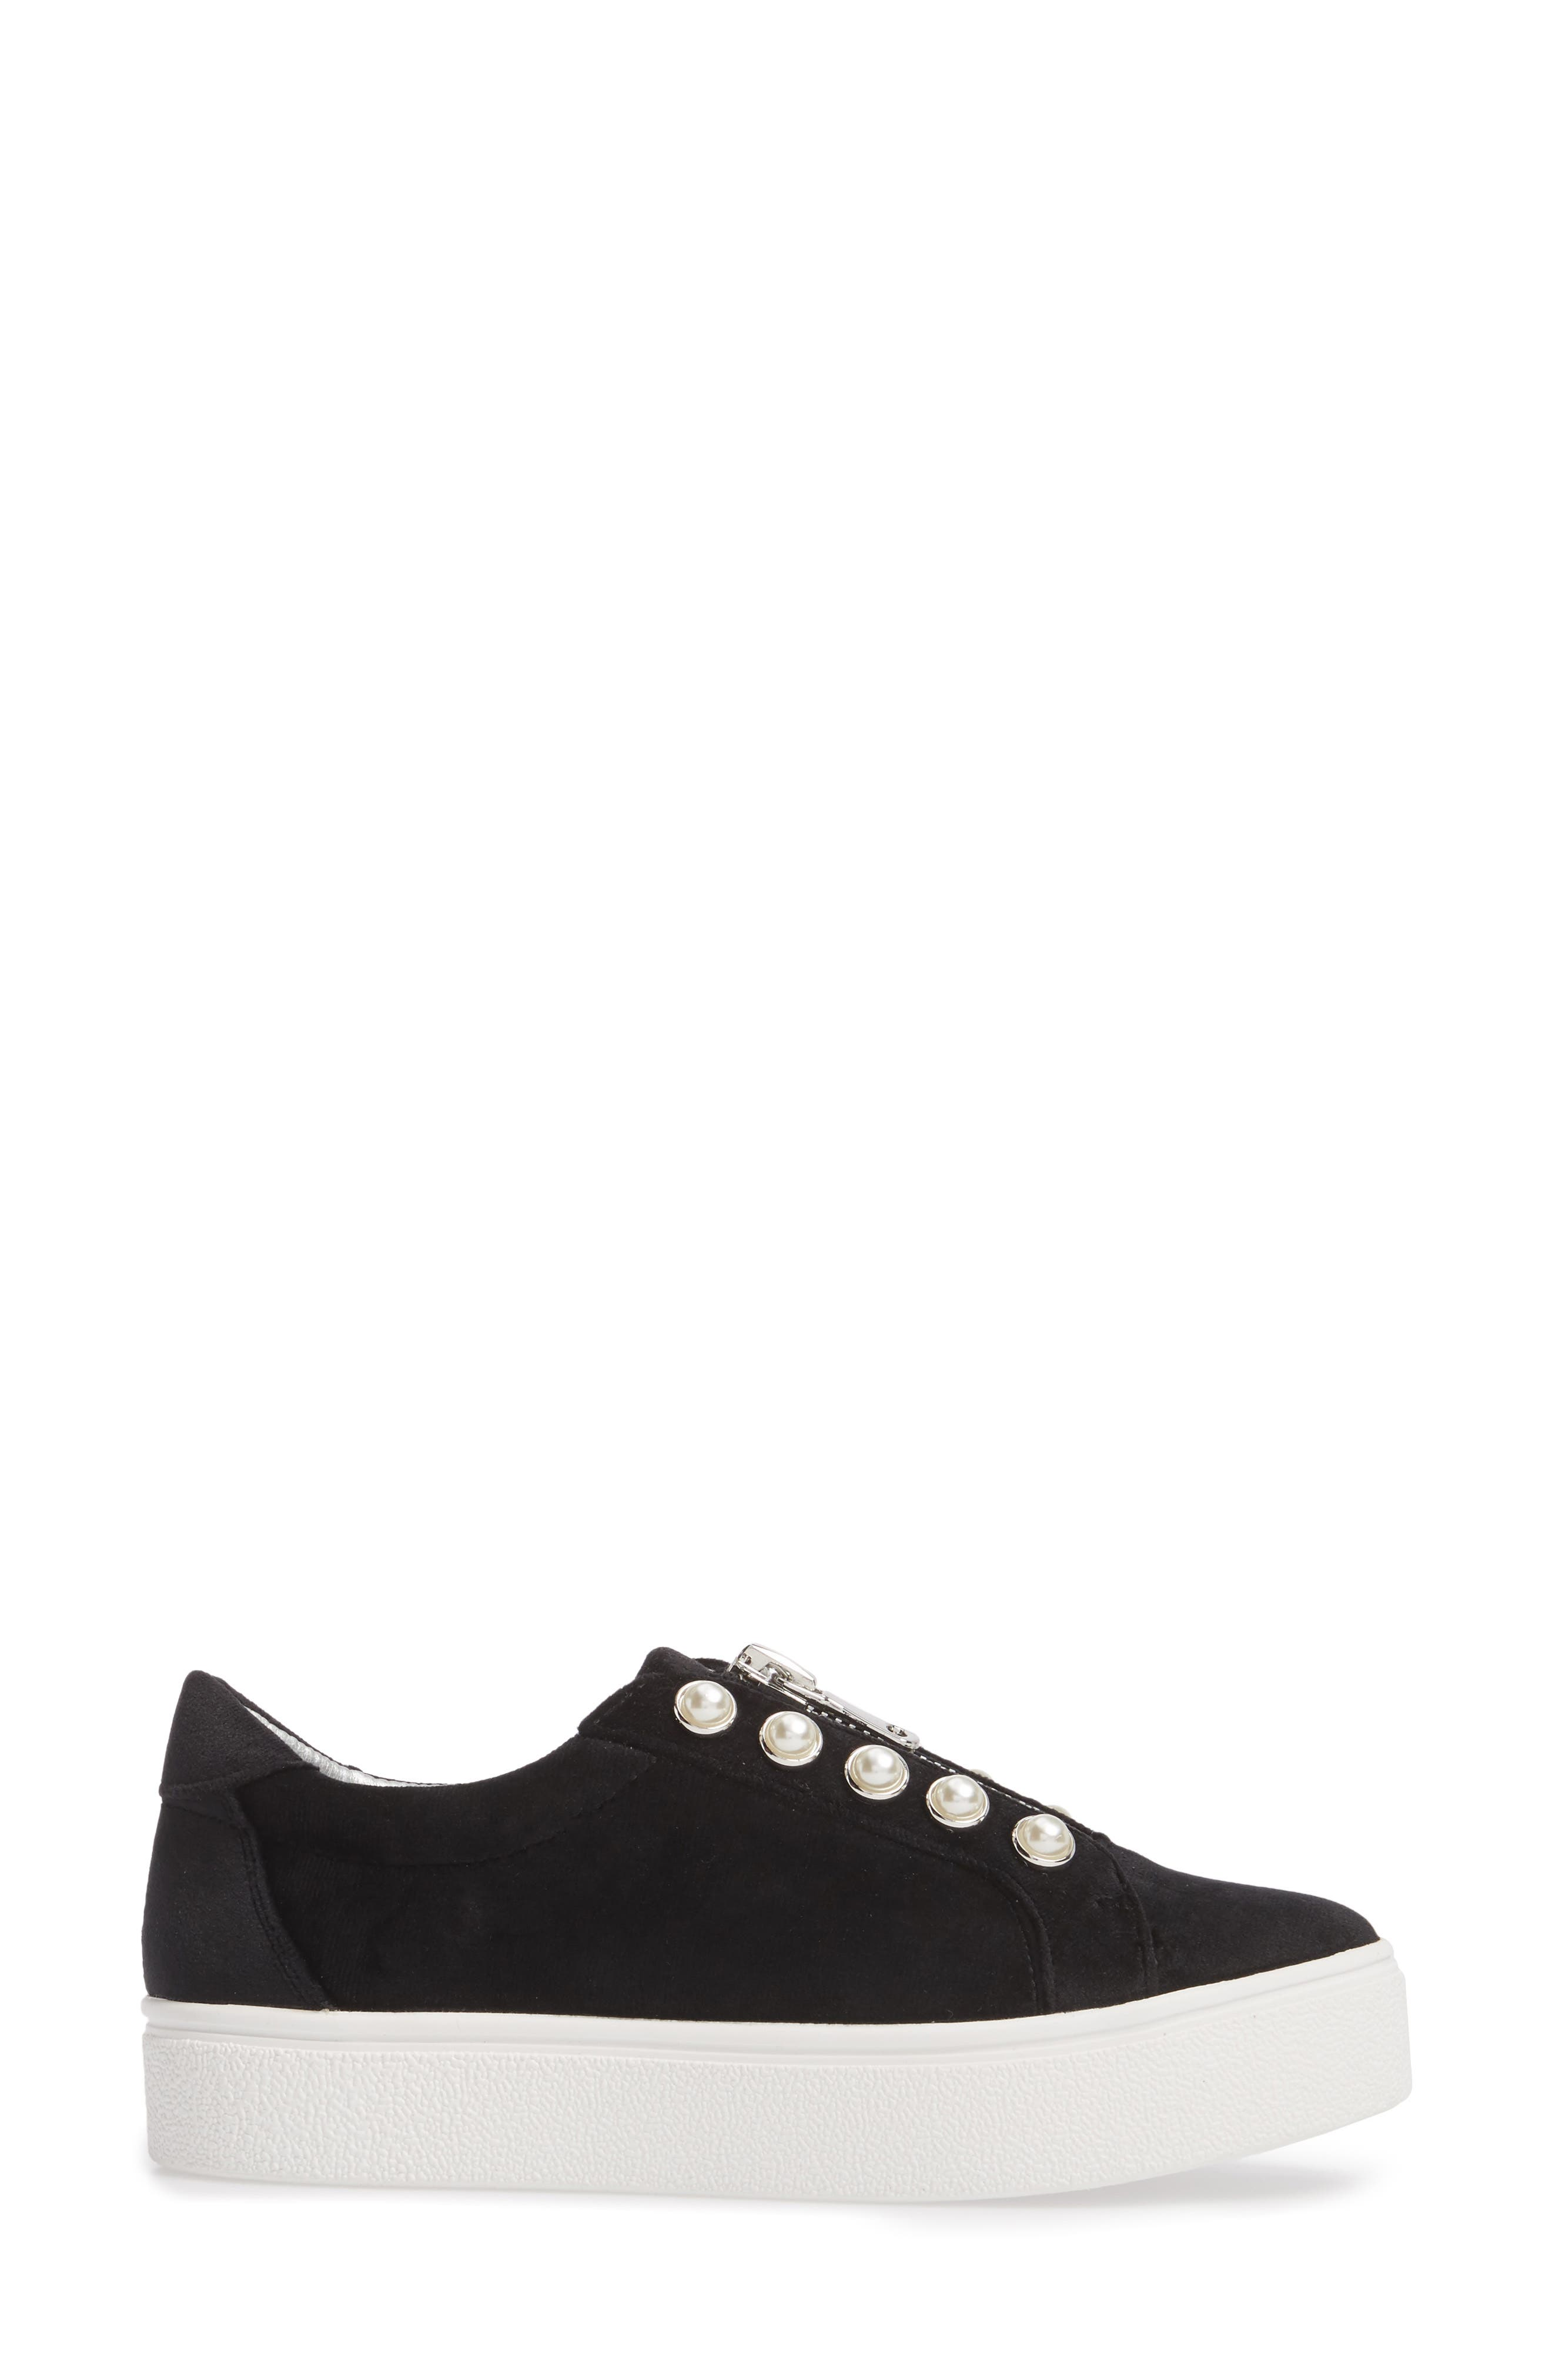 Lynn Embellished Platform Sneaker,                             Alternate thumbnail 3, color,                             001